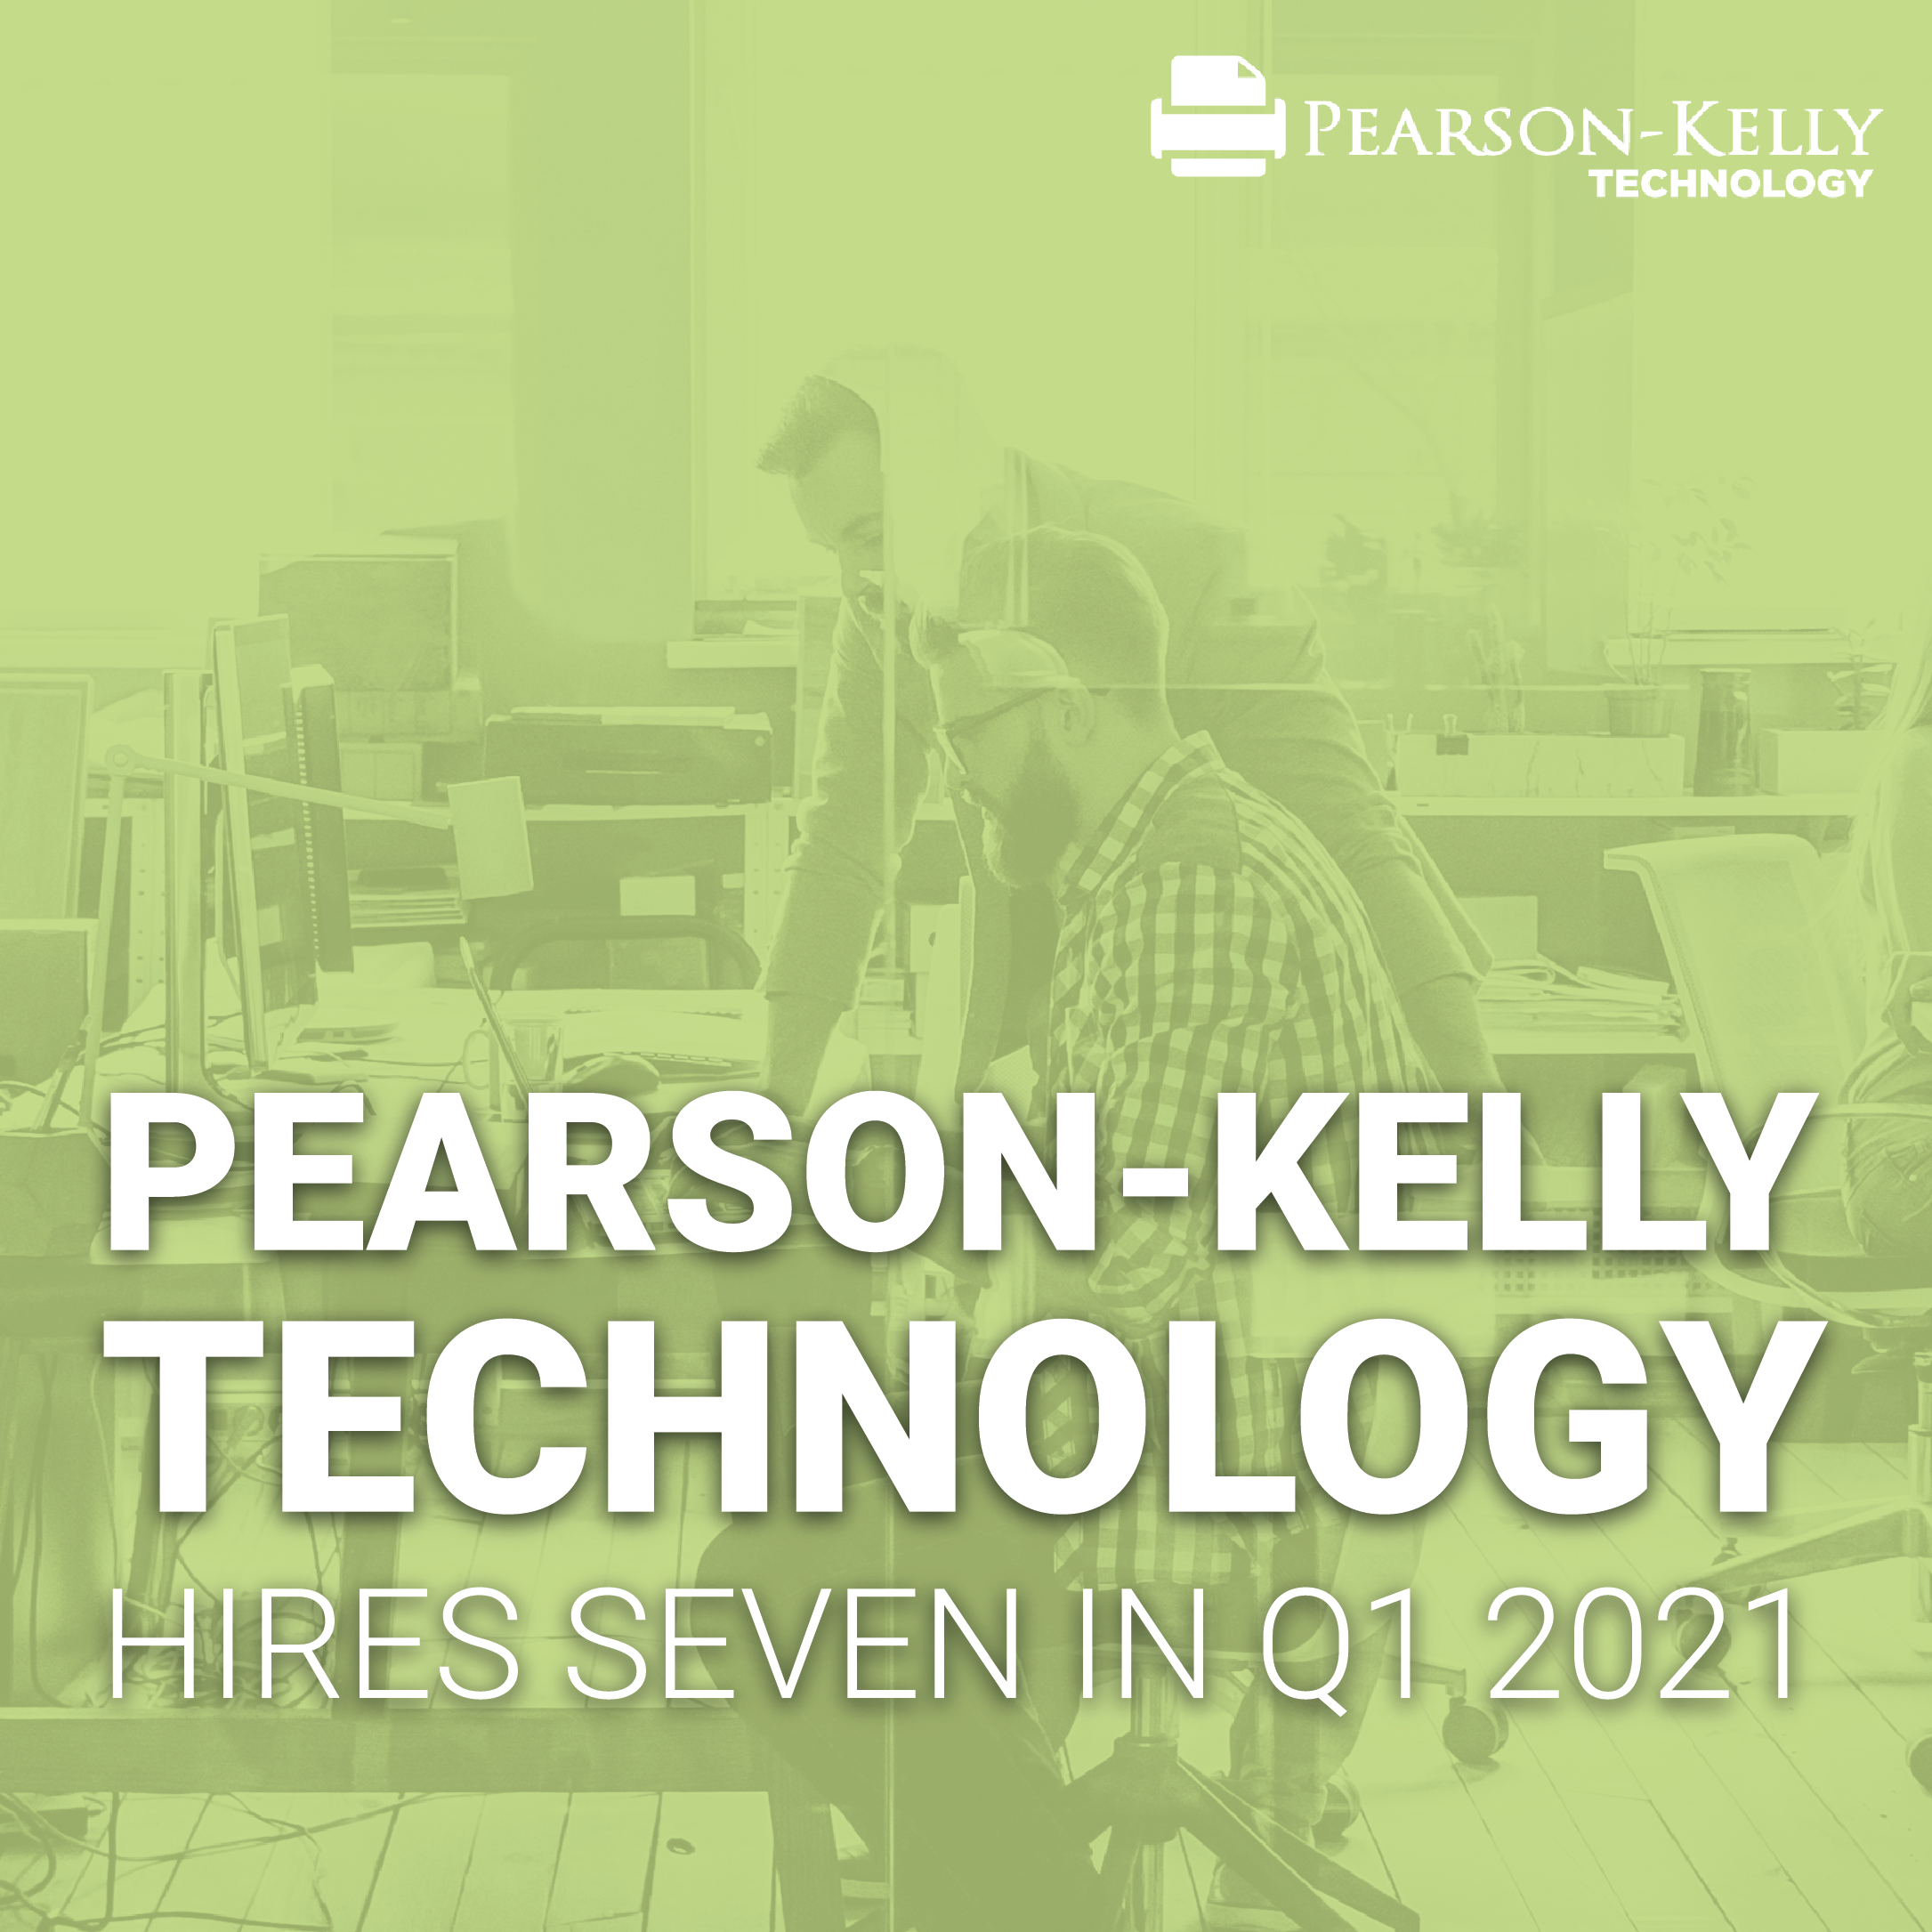 Image says: Pearson-Kelly Technology Hires 7 in Q1 2021